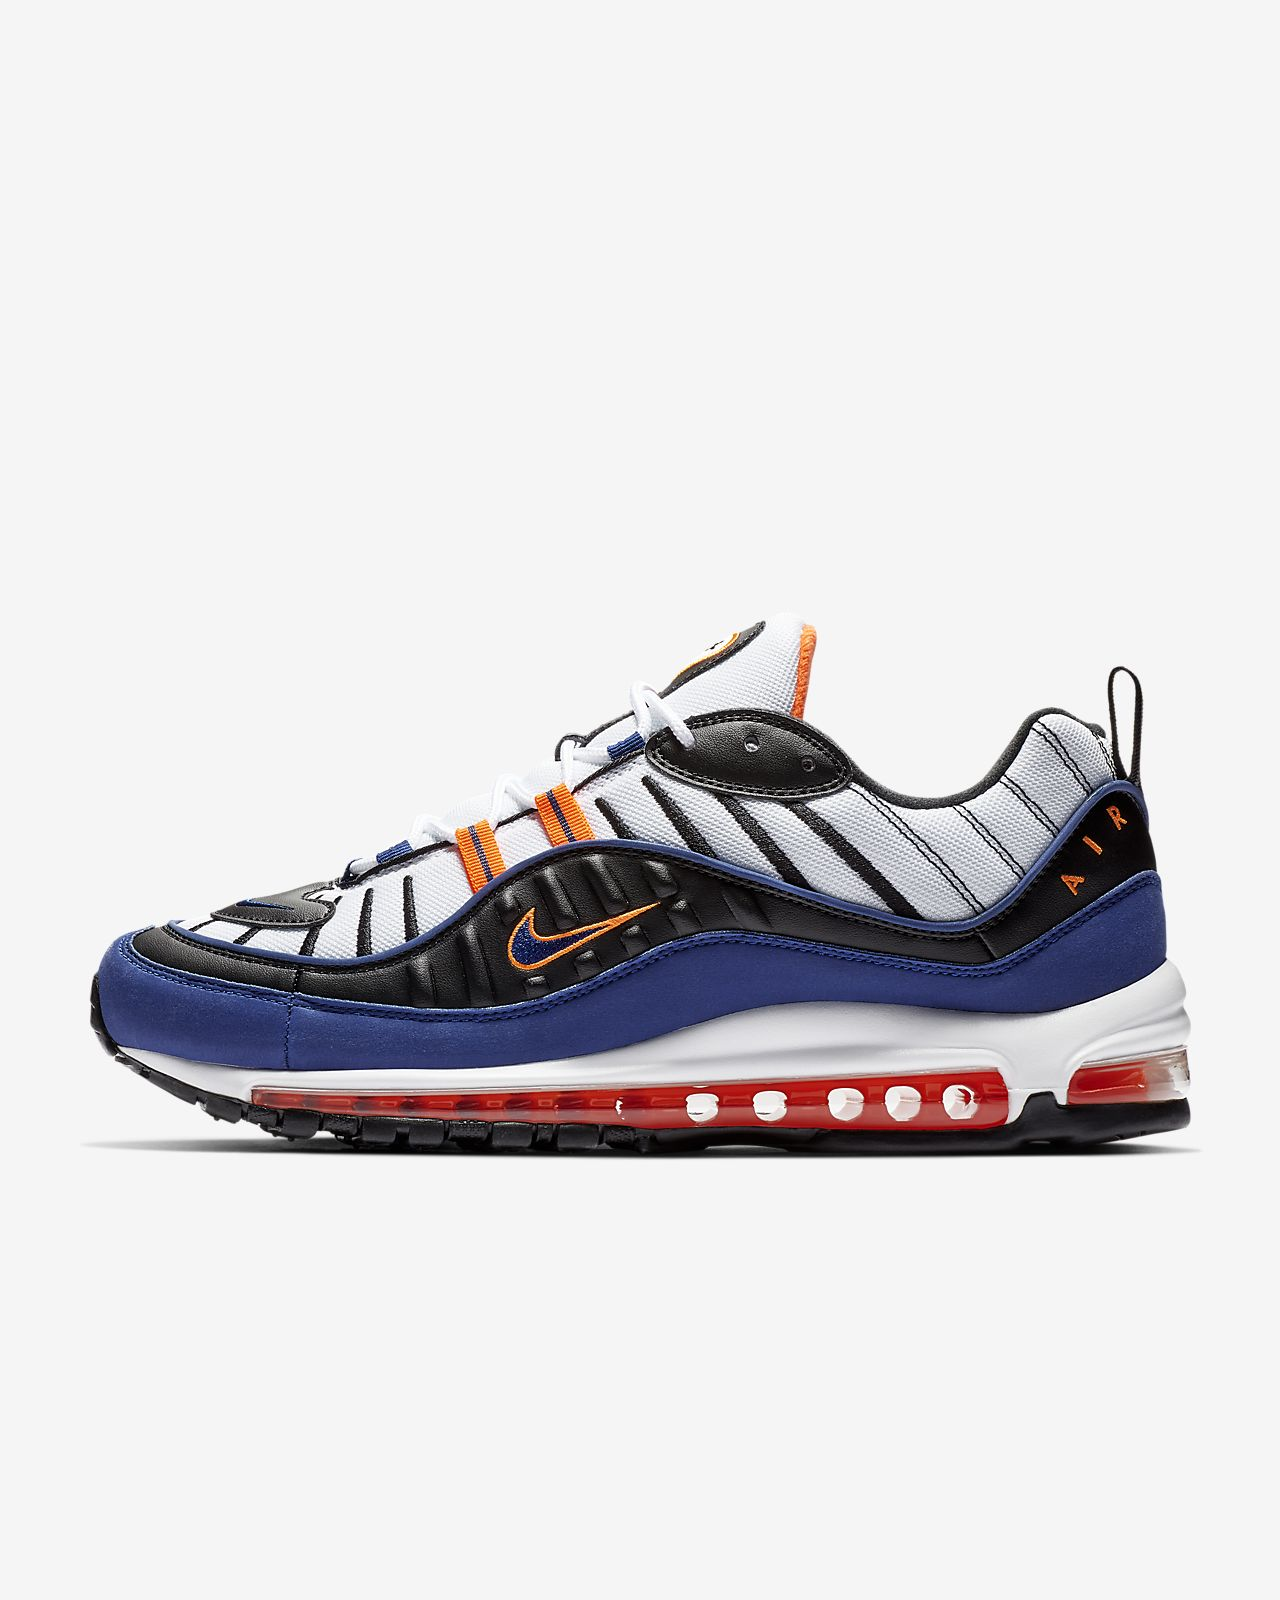 reputable site 87b67 58891 ... Chaussure Nike Air Max 98 pour Homme